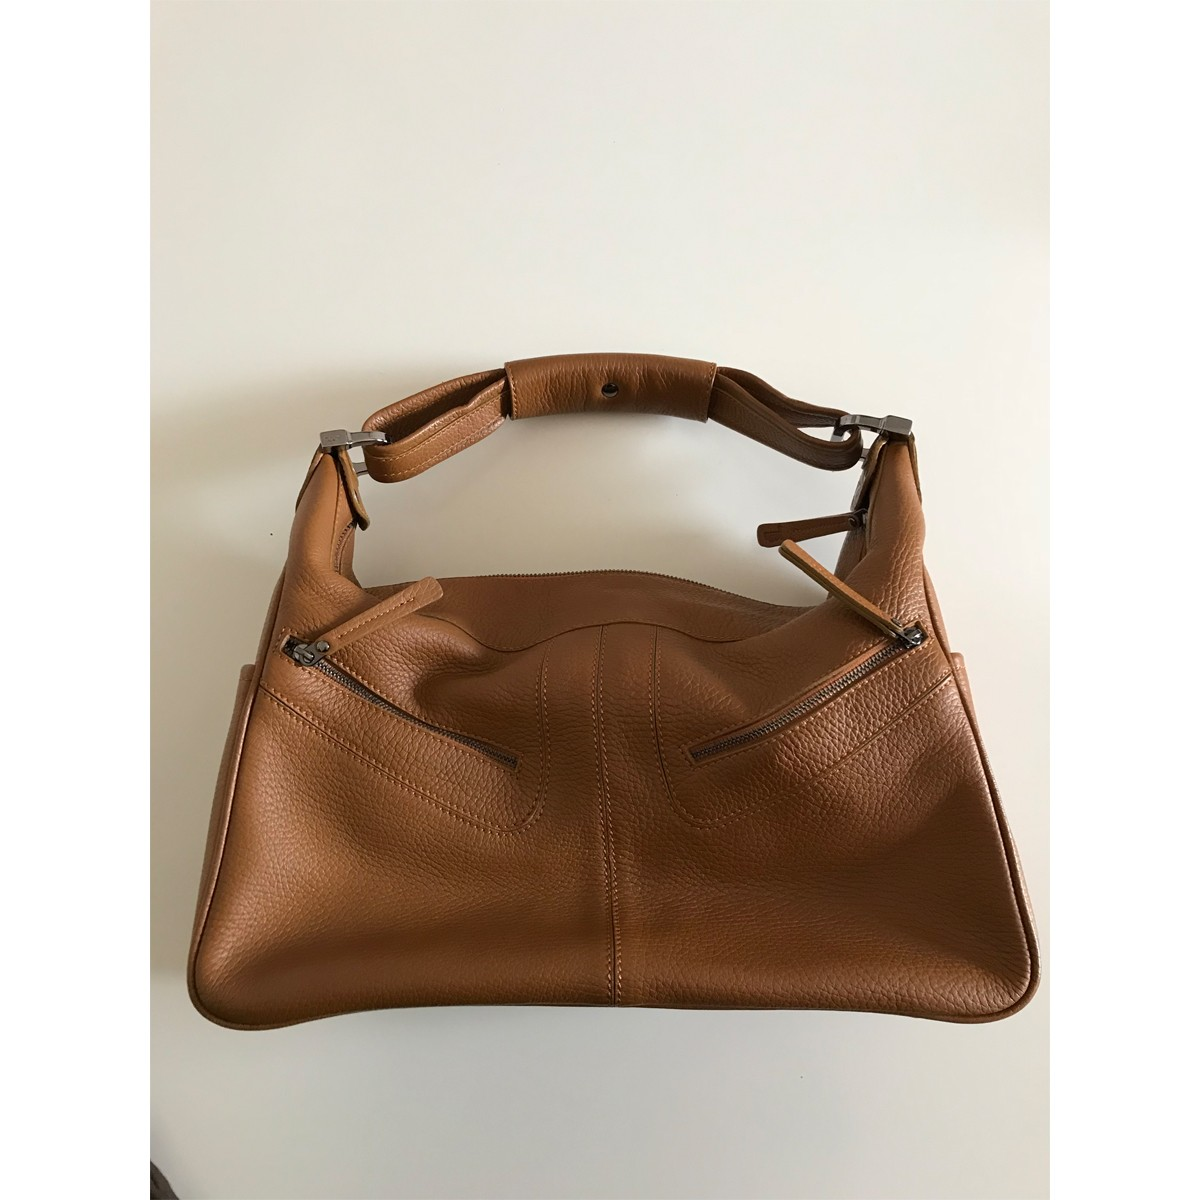 fce6c7cedd8 Tod's Robin's Peevled Leather Hobo bag in camel color - Women | My ...